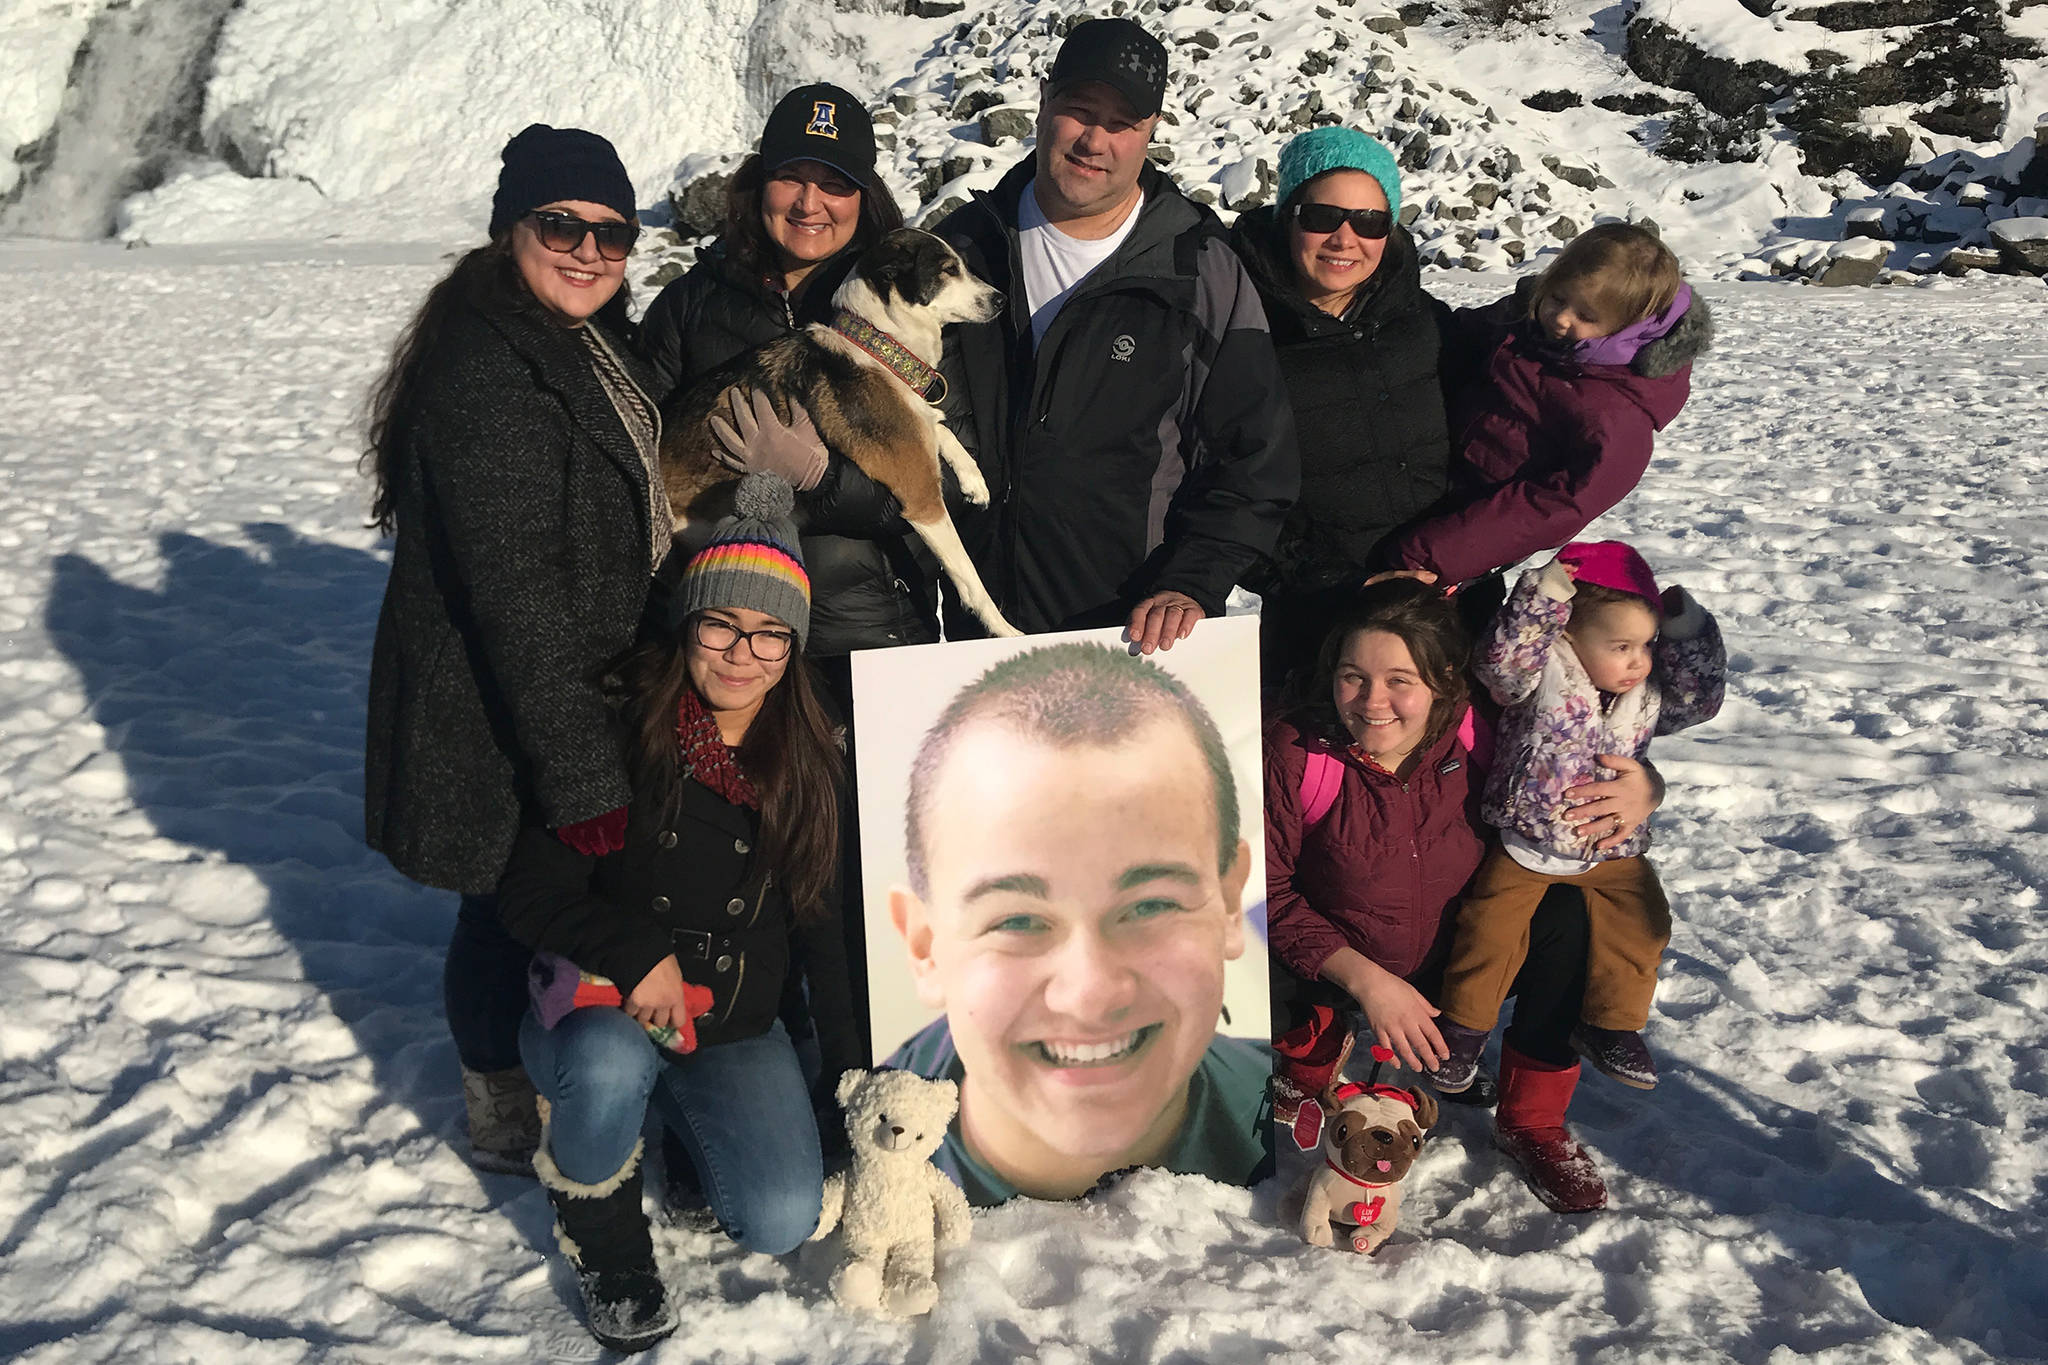 Members of the Eyre family pose at the Mendenhall Glacier with a photograph of Cody Eyre, who was shot and killed by law enforcement on Christmas Eve 2017. (Courtesy Photo | Eyre Family)